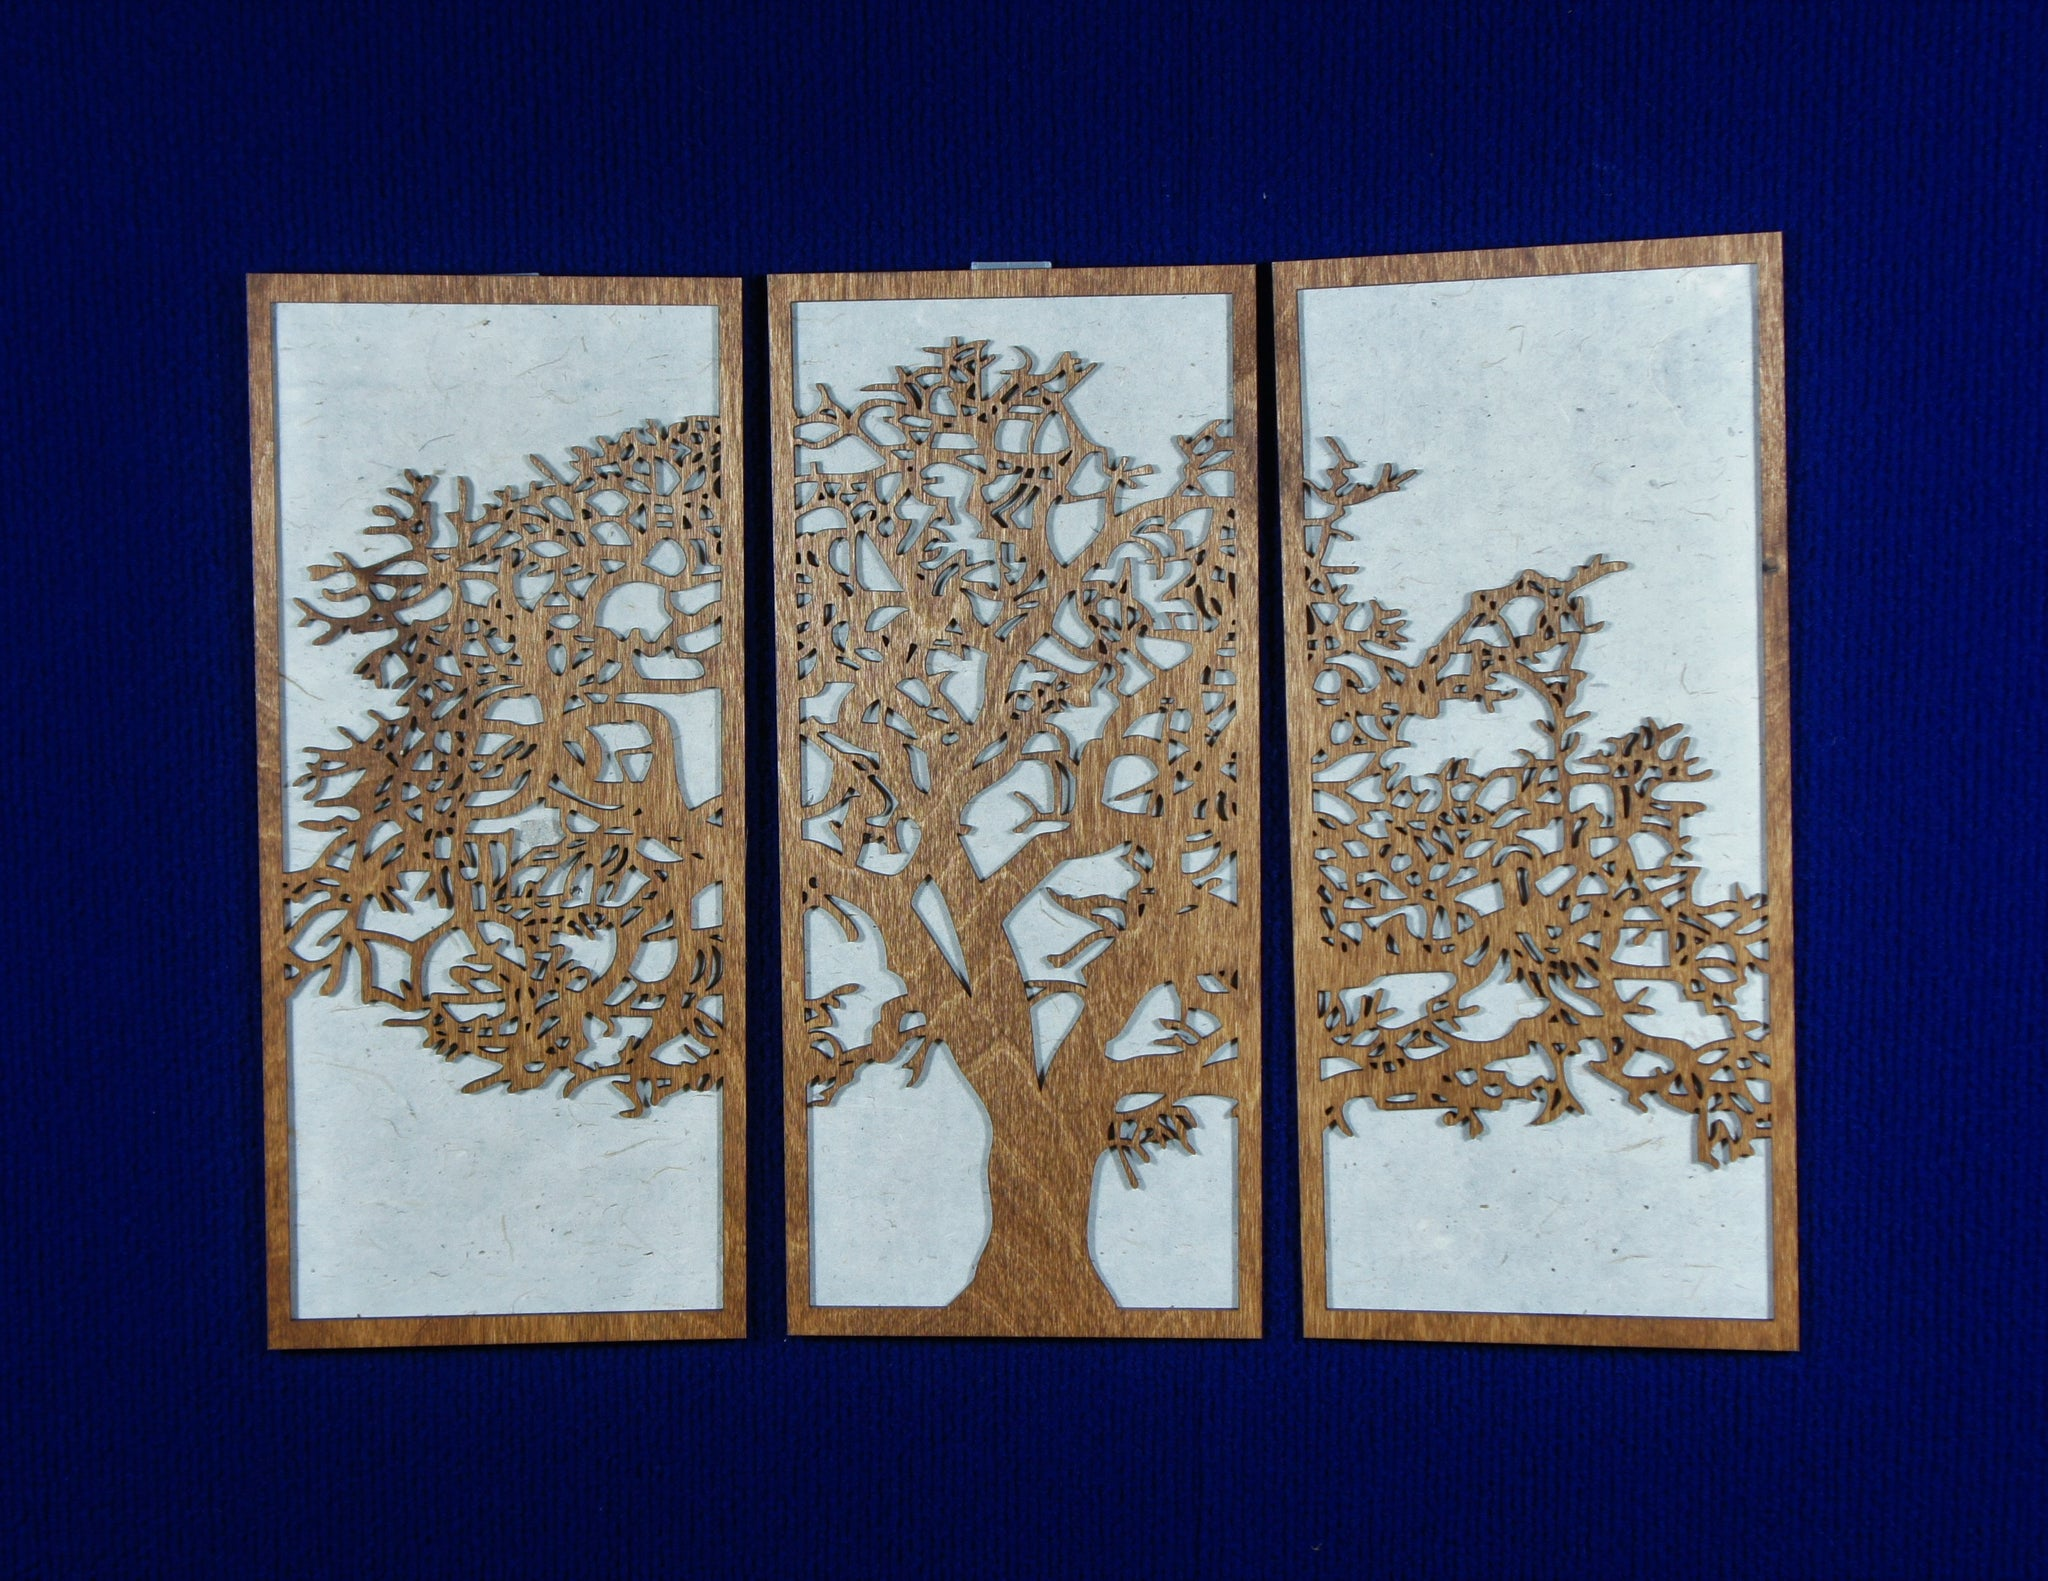 3 Panel Wood Wall Art - Tree design